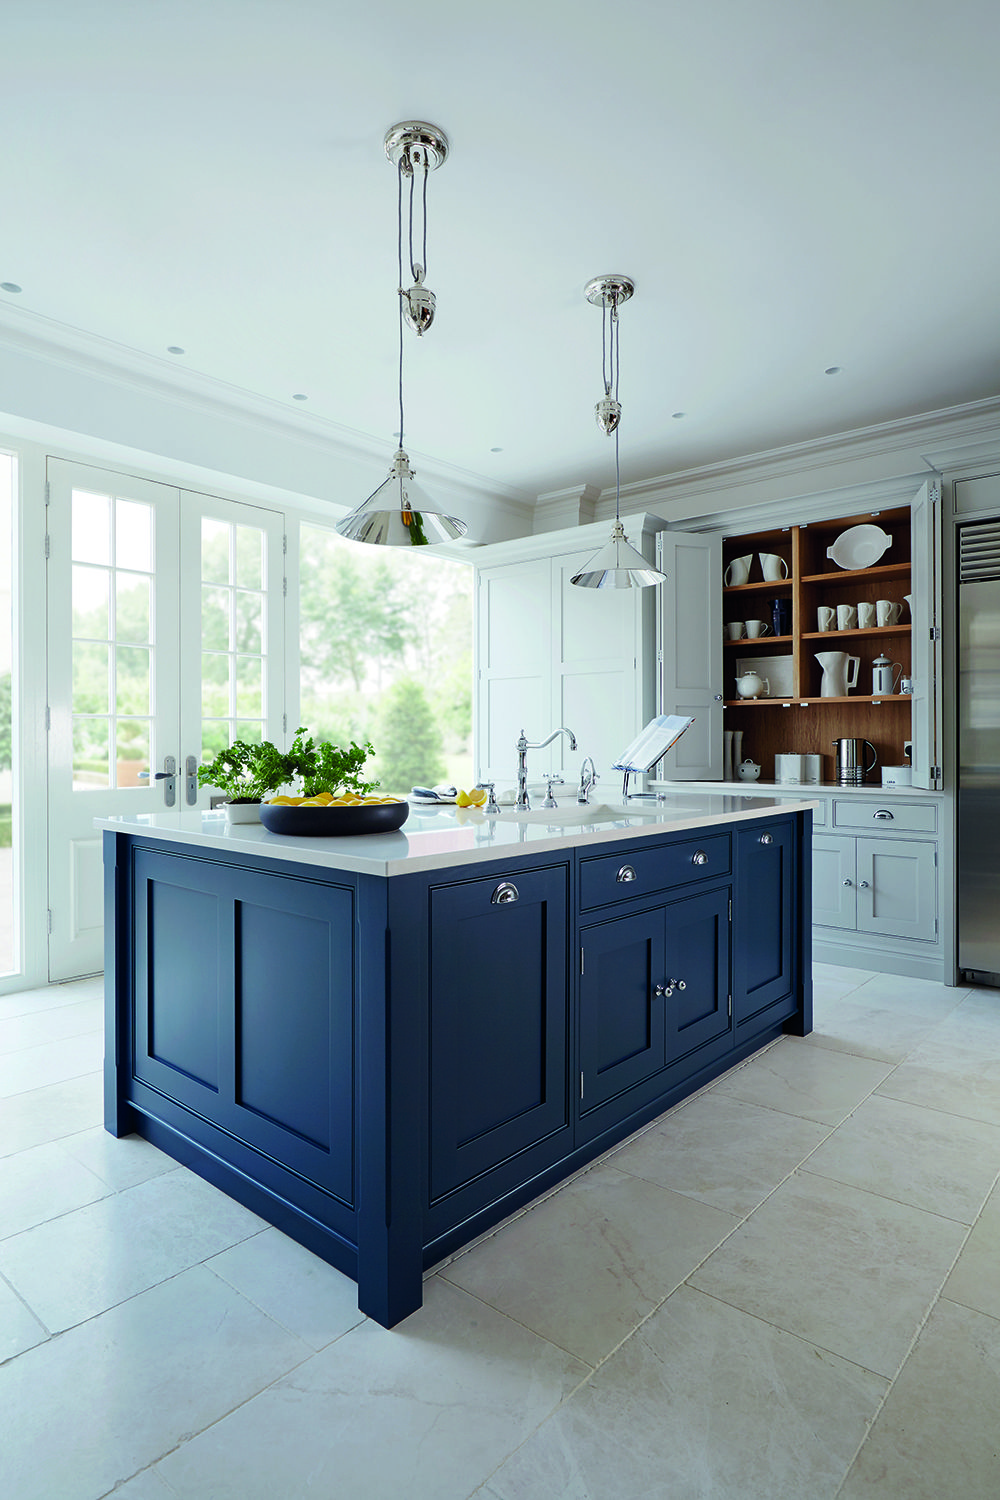 Trend : Colourful Kitchen Cabinetry   Kitchen inspiration ...